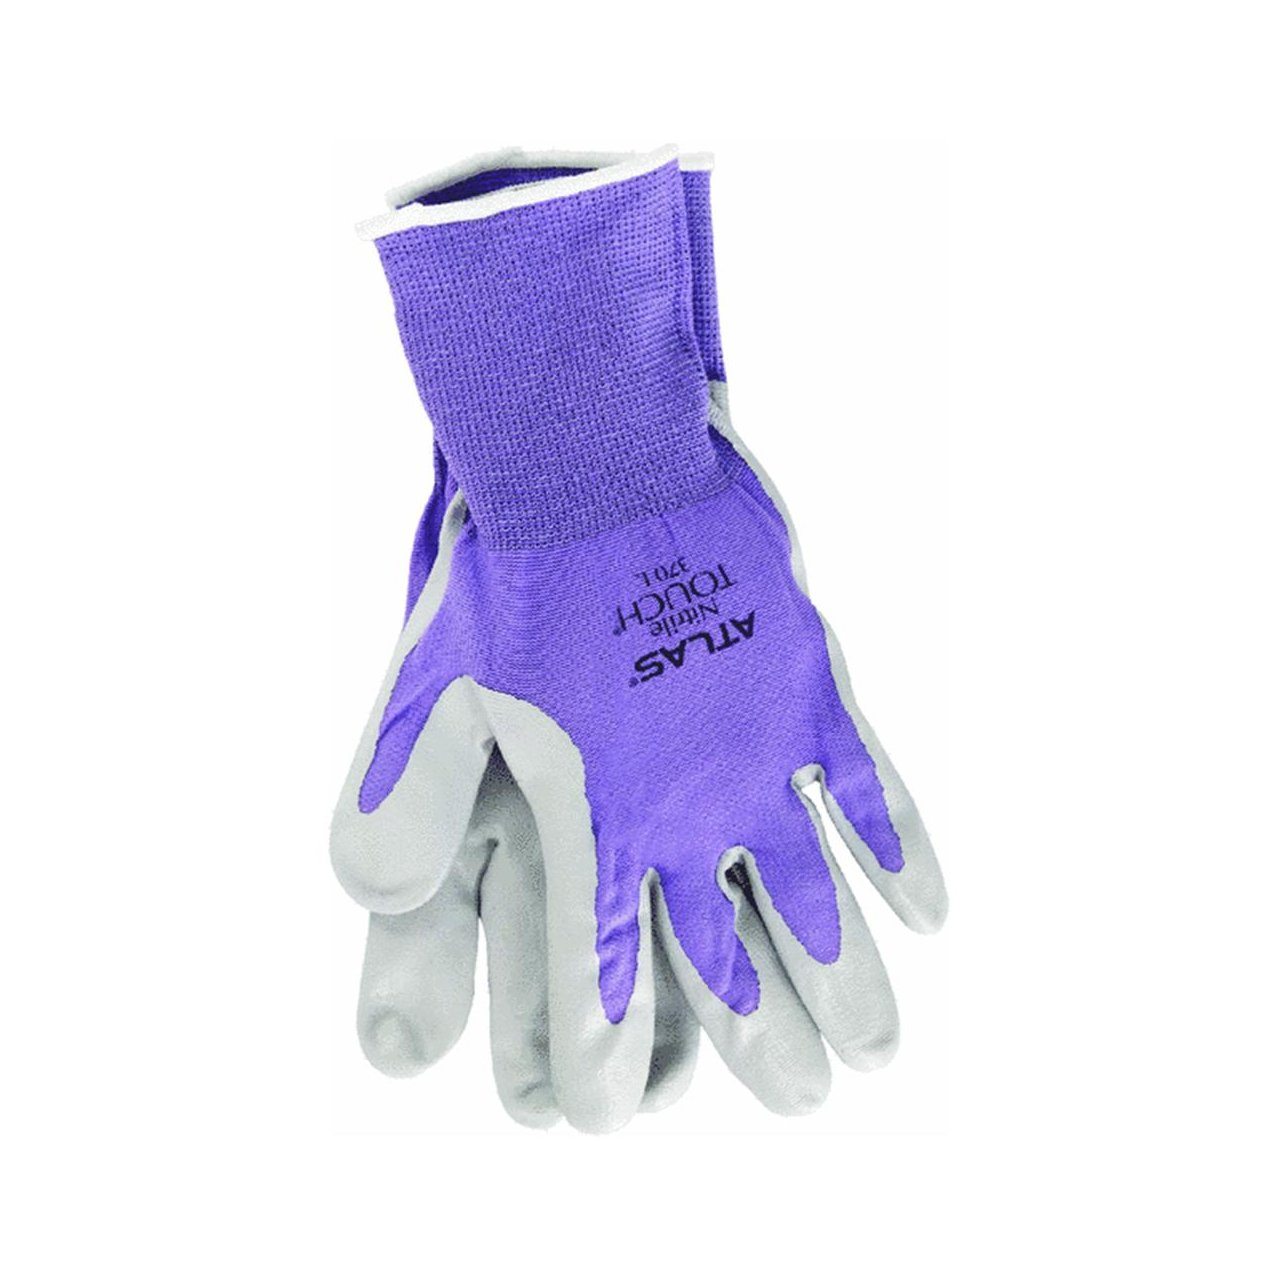 High Quality Amazon.com : Atlas Glove NT370A6L Large Atlas Nitrile Touch Gloves : Work  Gloves : Garden U0026 Outdoor